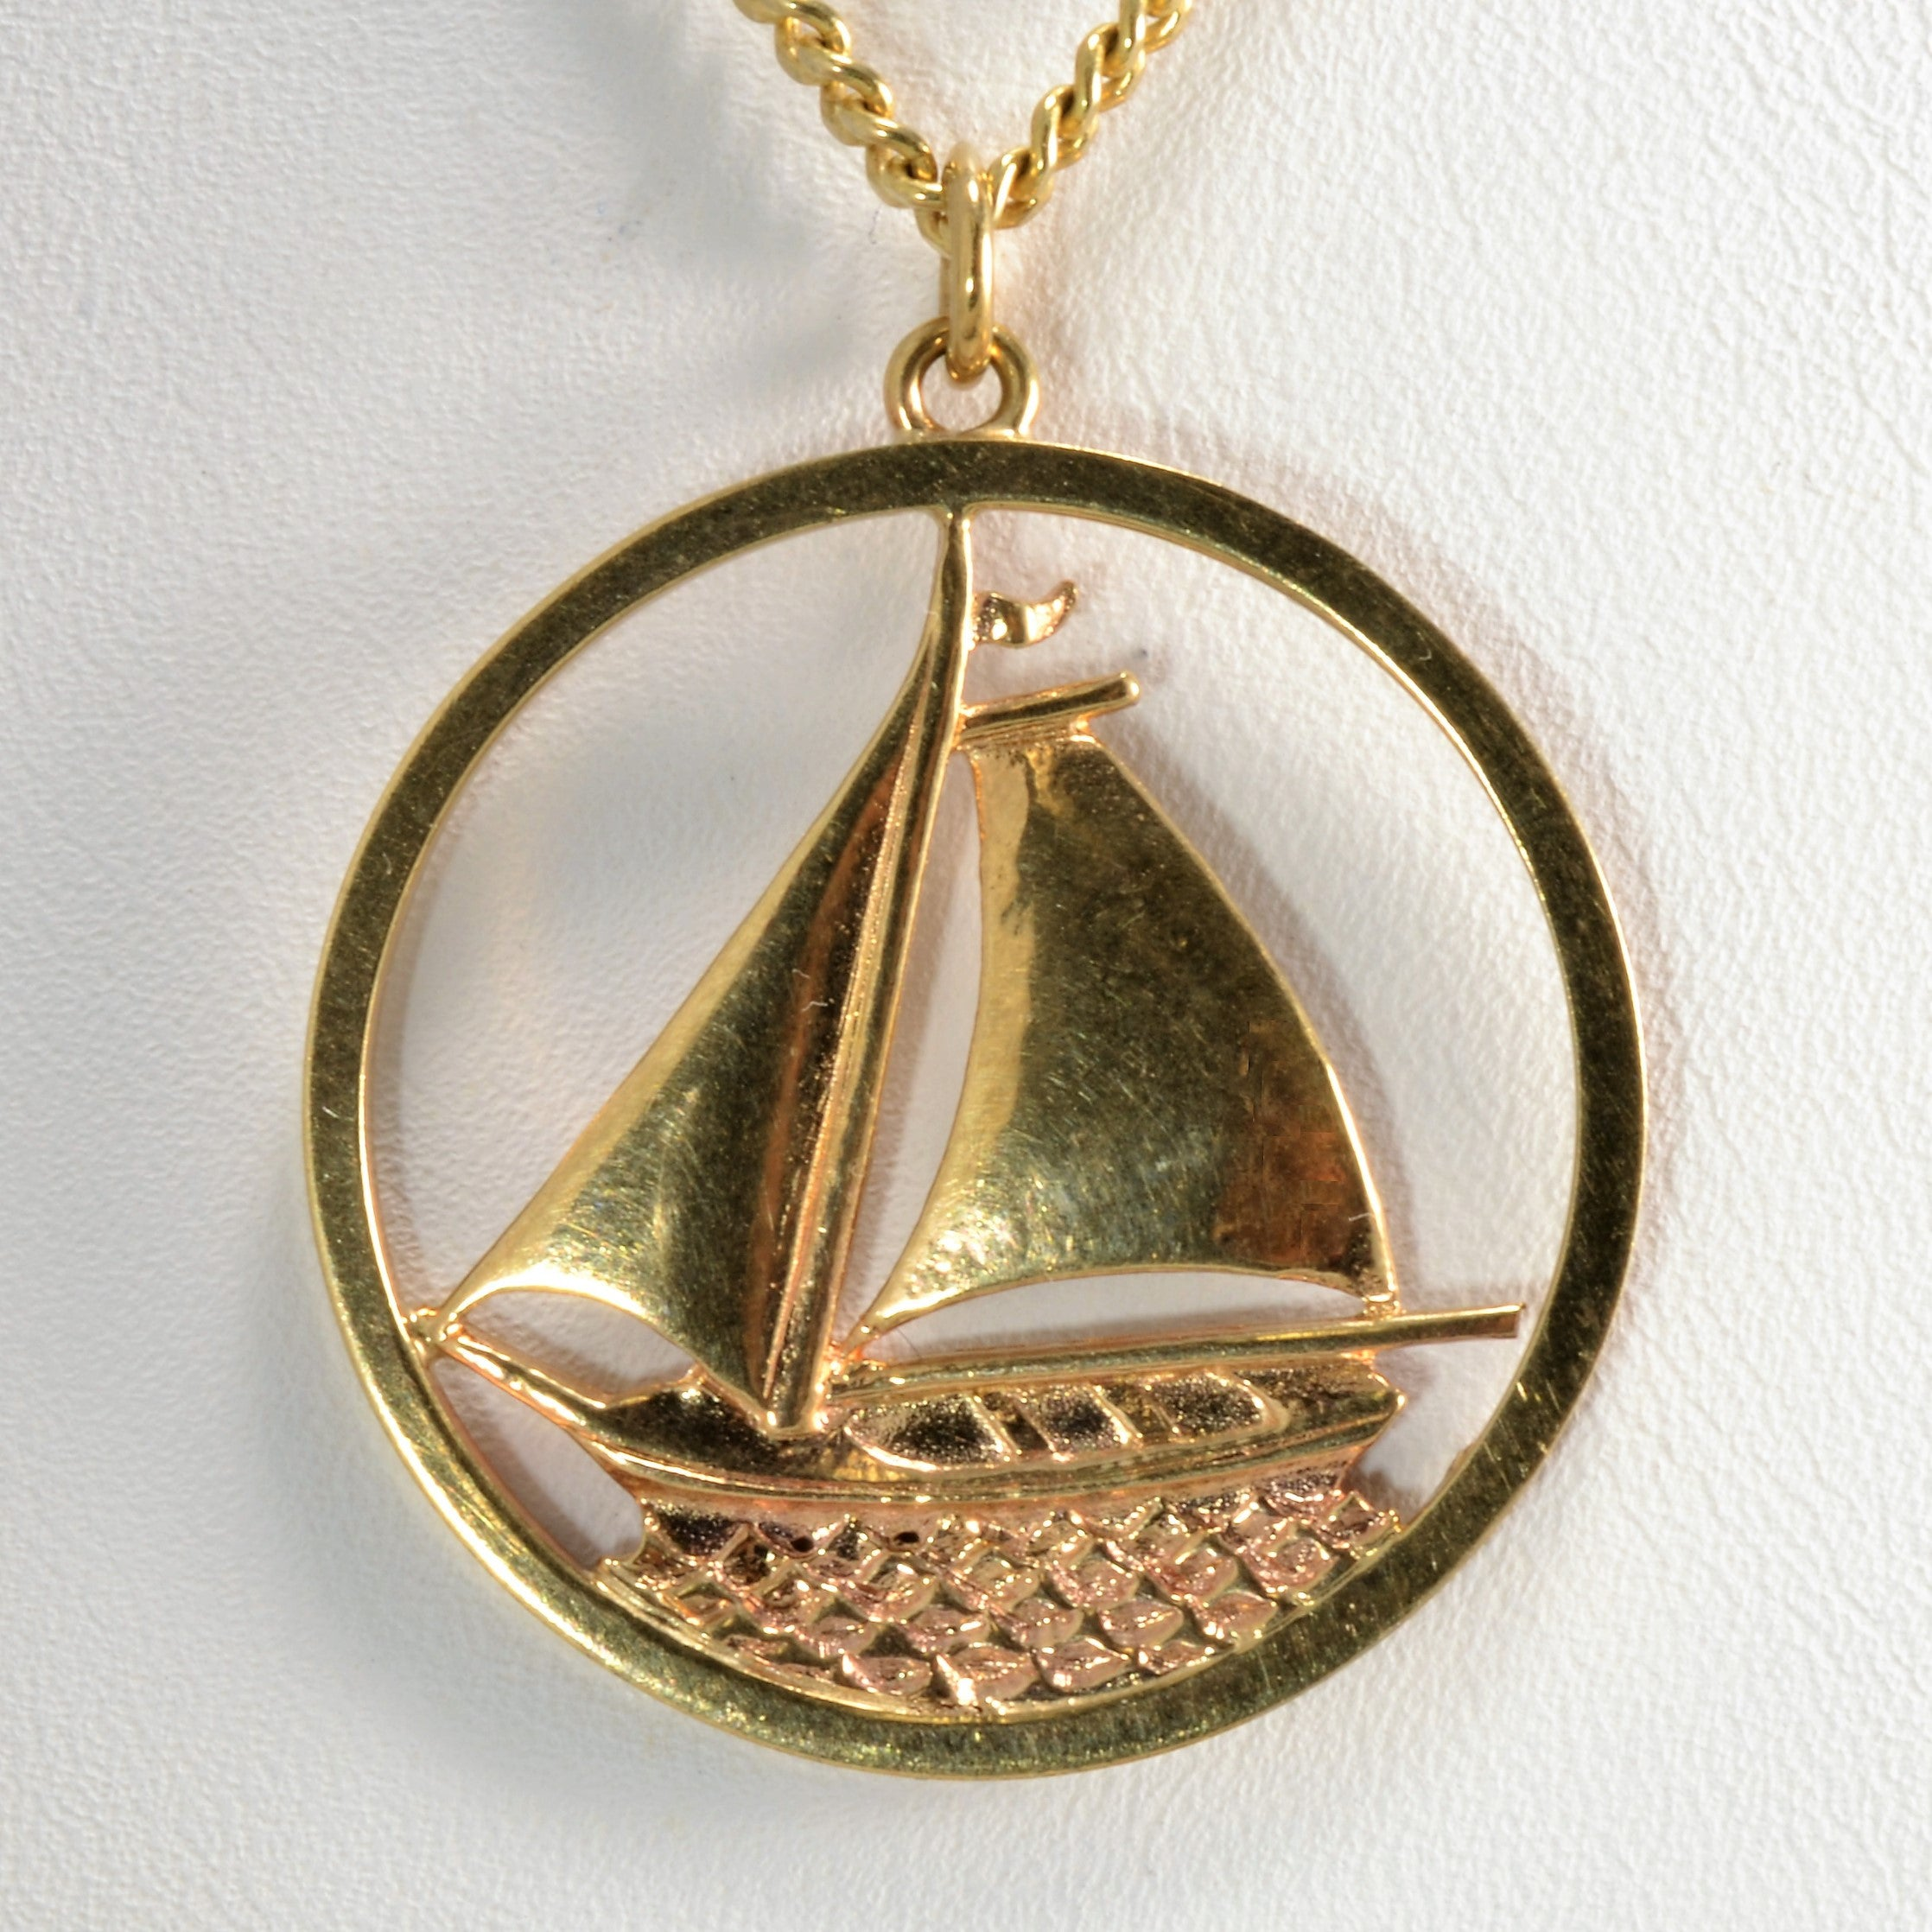 Yellow Gold Sailboat Necklace | 26"